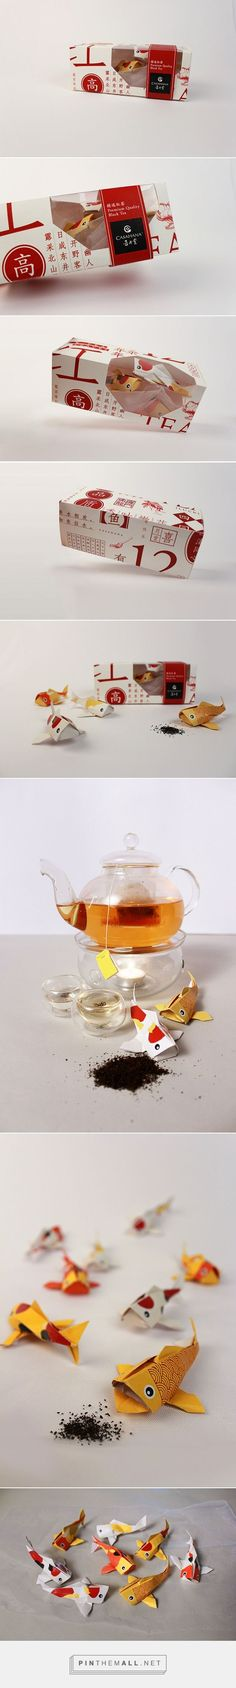 Casahana Black Tea curated by Packaging Diva PD. Chinese New Year origami tea packaging inspiration.: